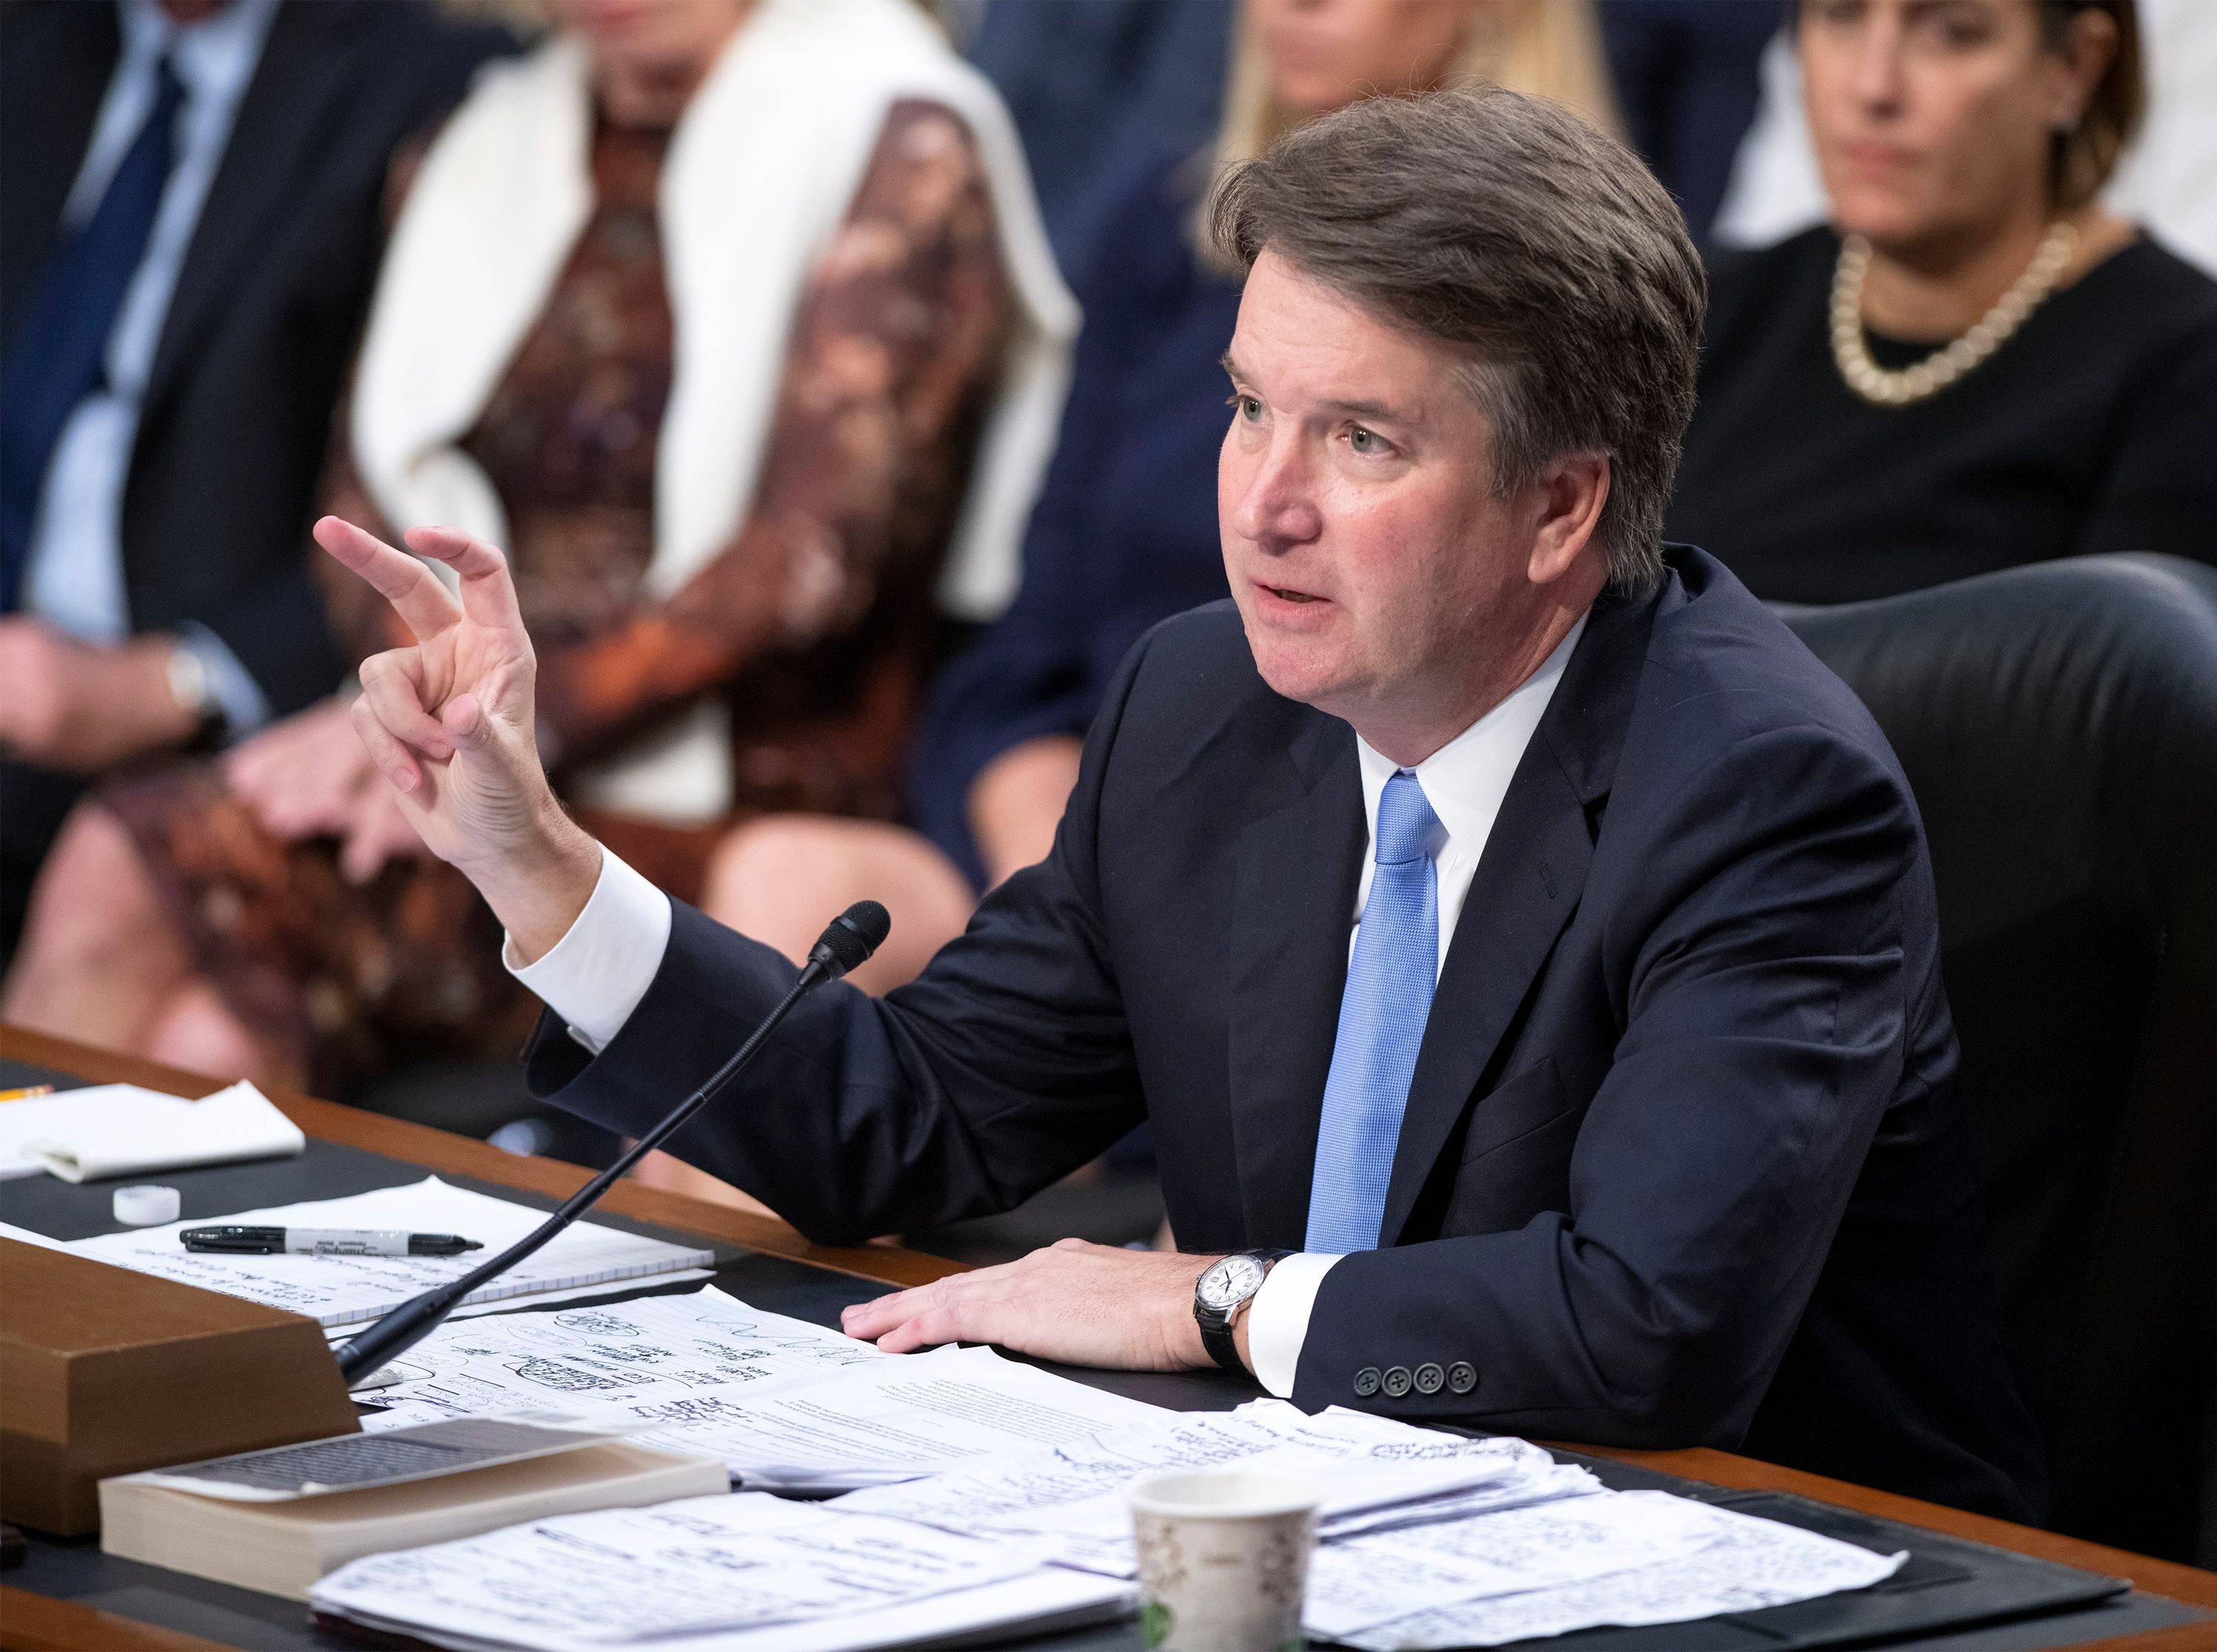 Judge Brett Kavanaugh testifies before the United States Senate Judiciary Committee on his nomination as Associate Justice of the US Supreme Court in Washington, D.C., on Sept. 6, 2018.